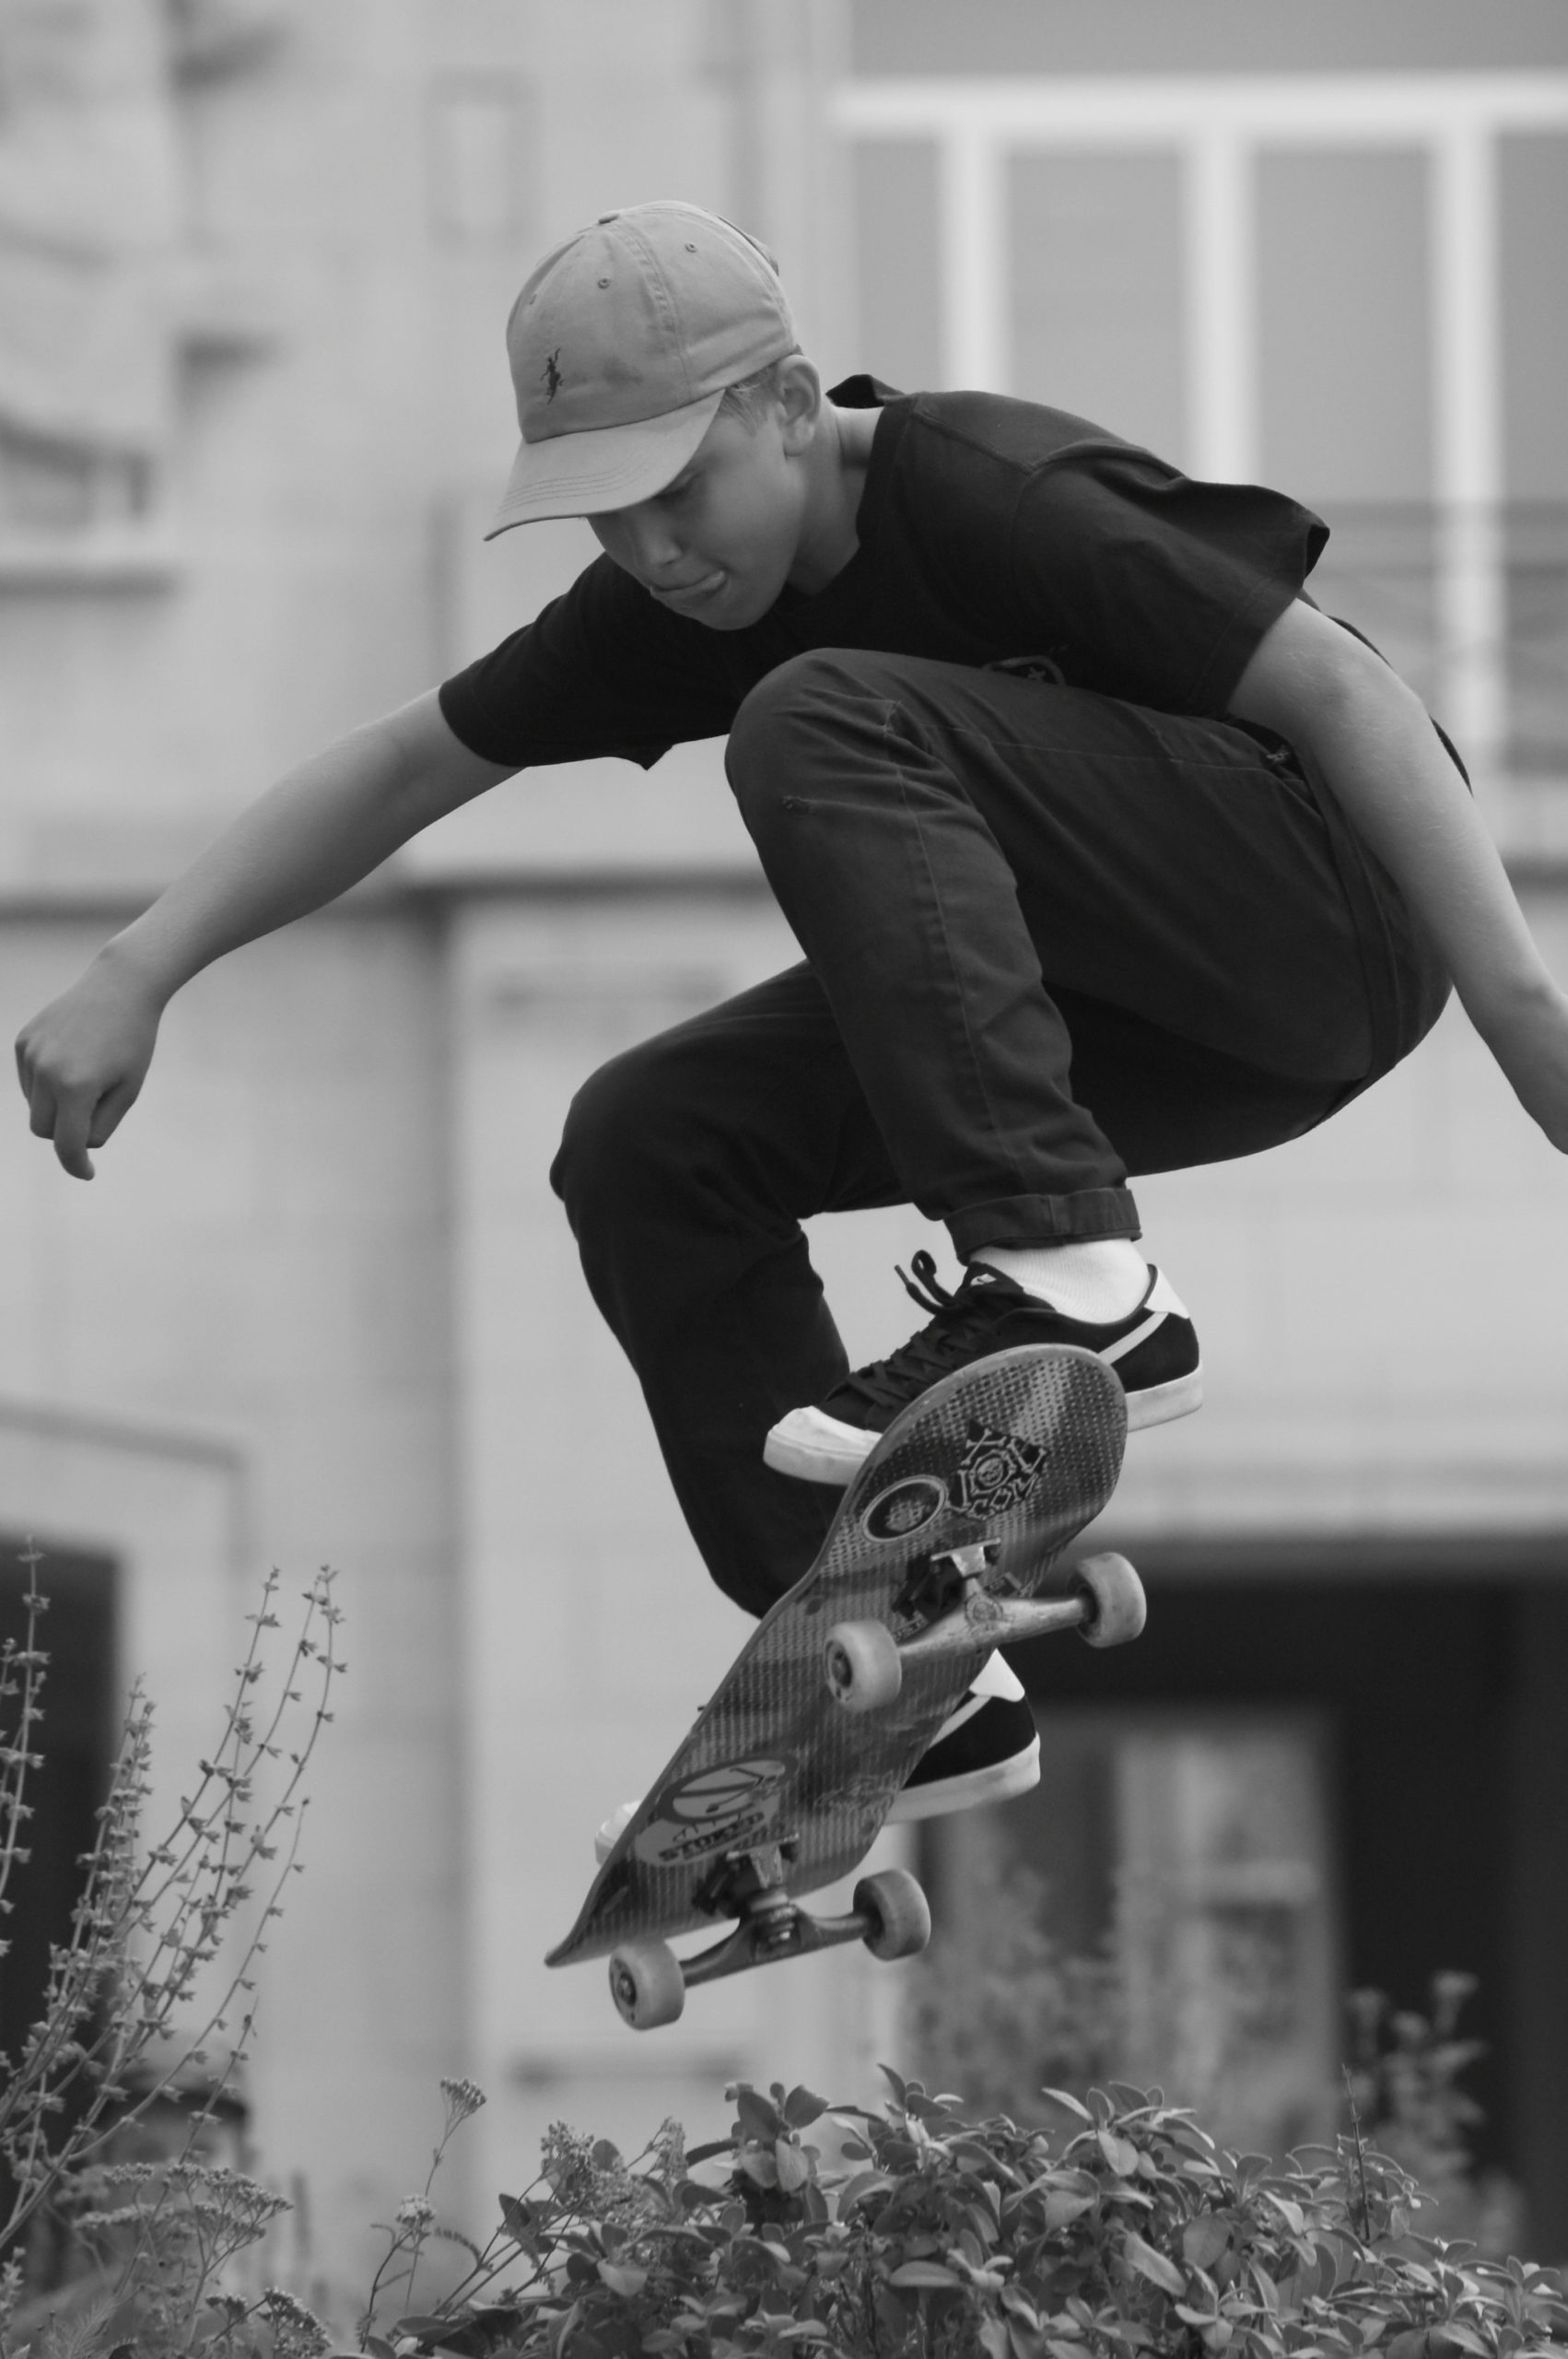 How Can You Be A Professional Skater?